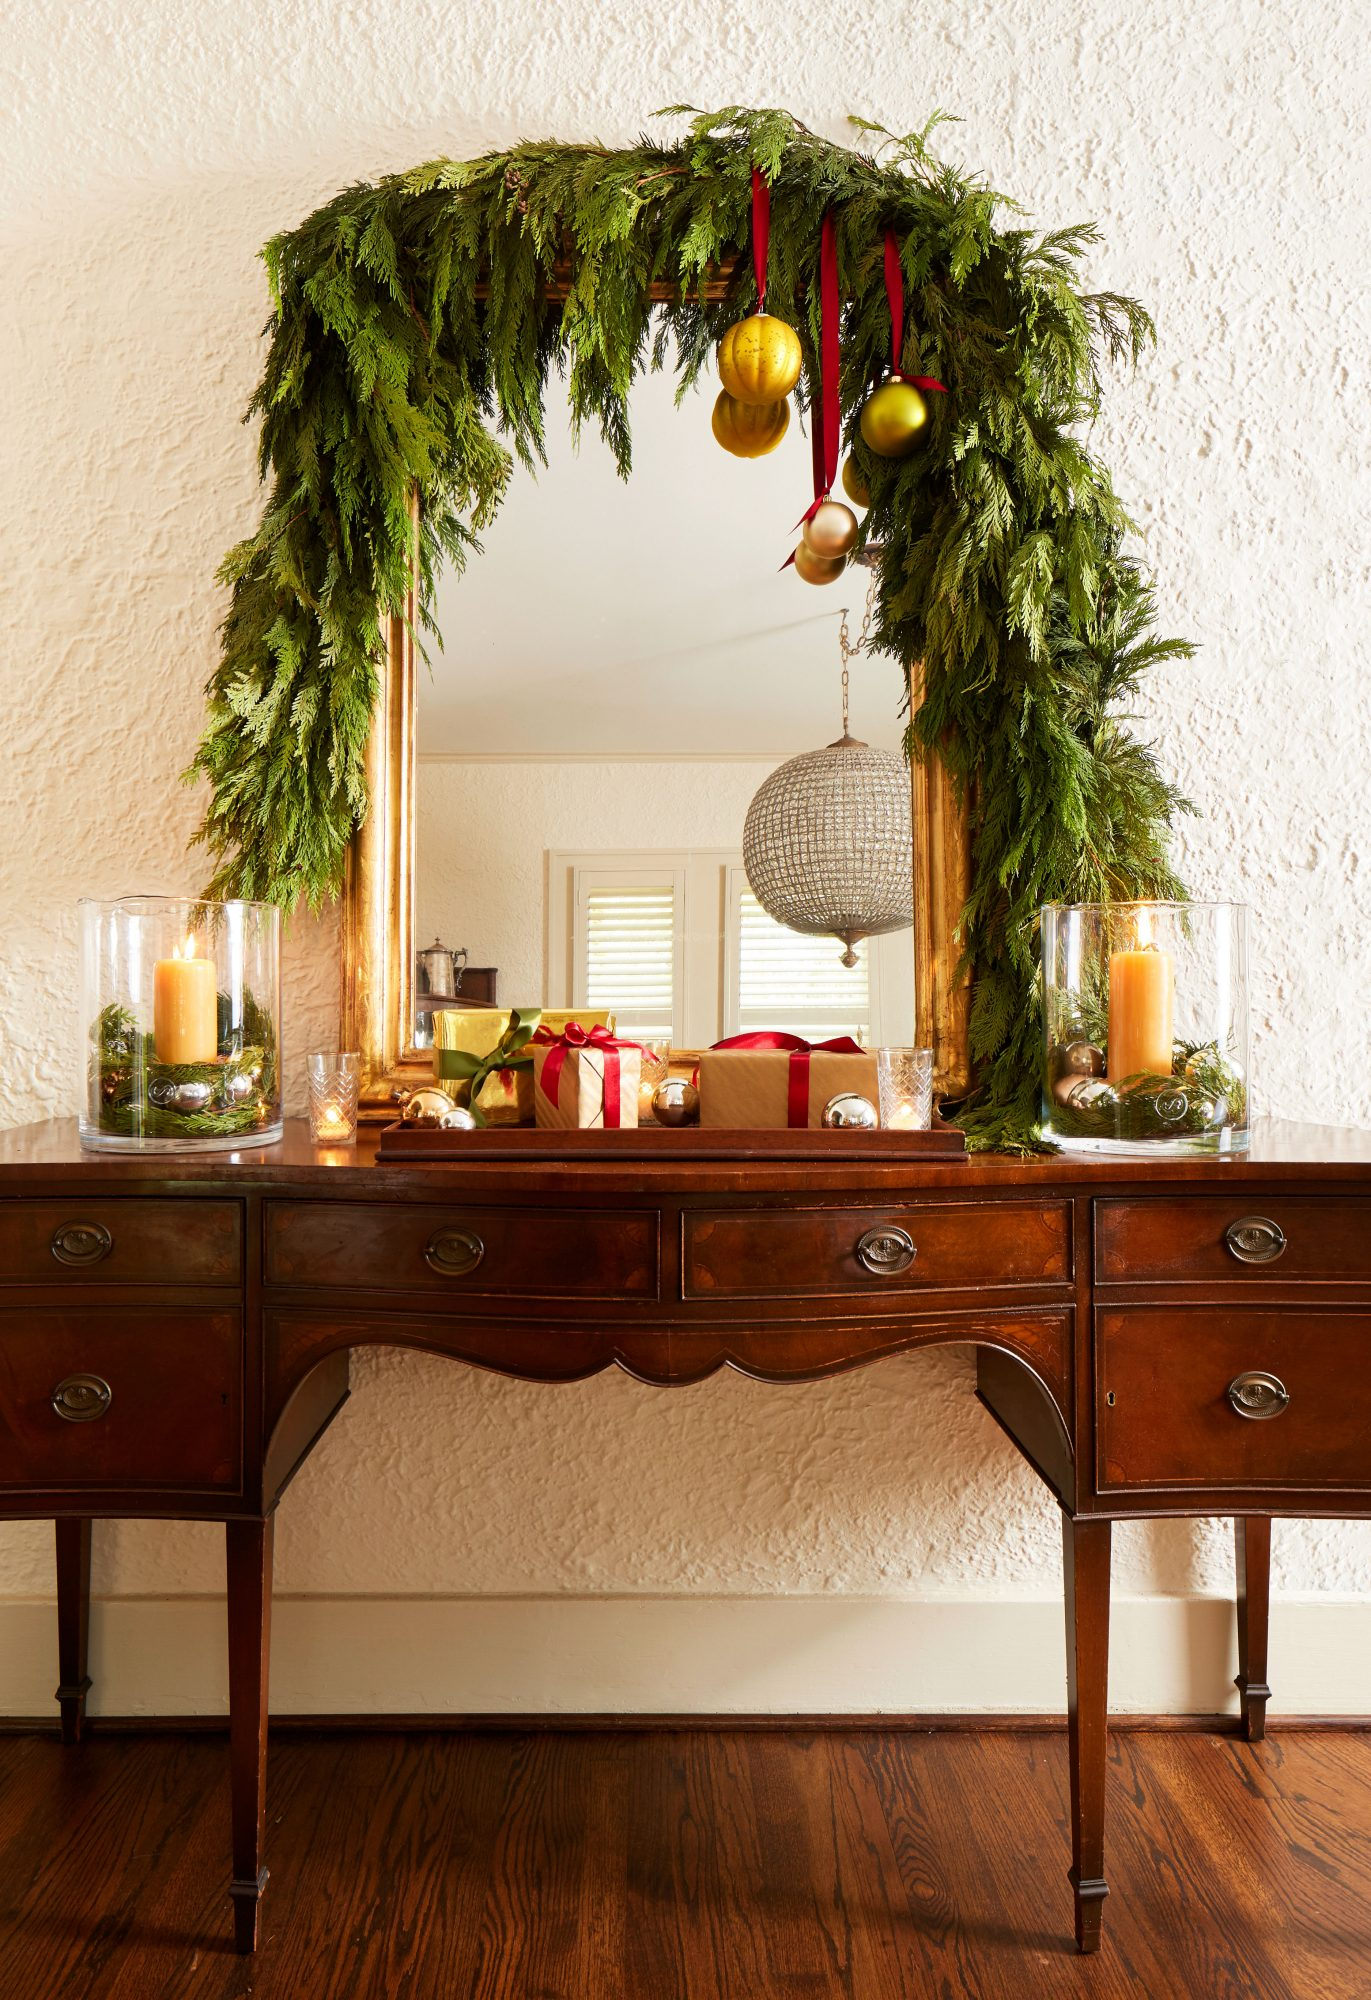 Cedar Garland Over Mirror